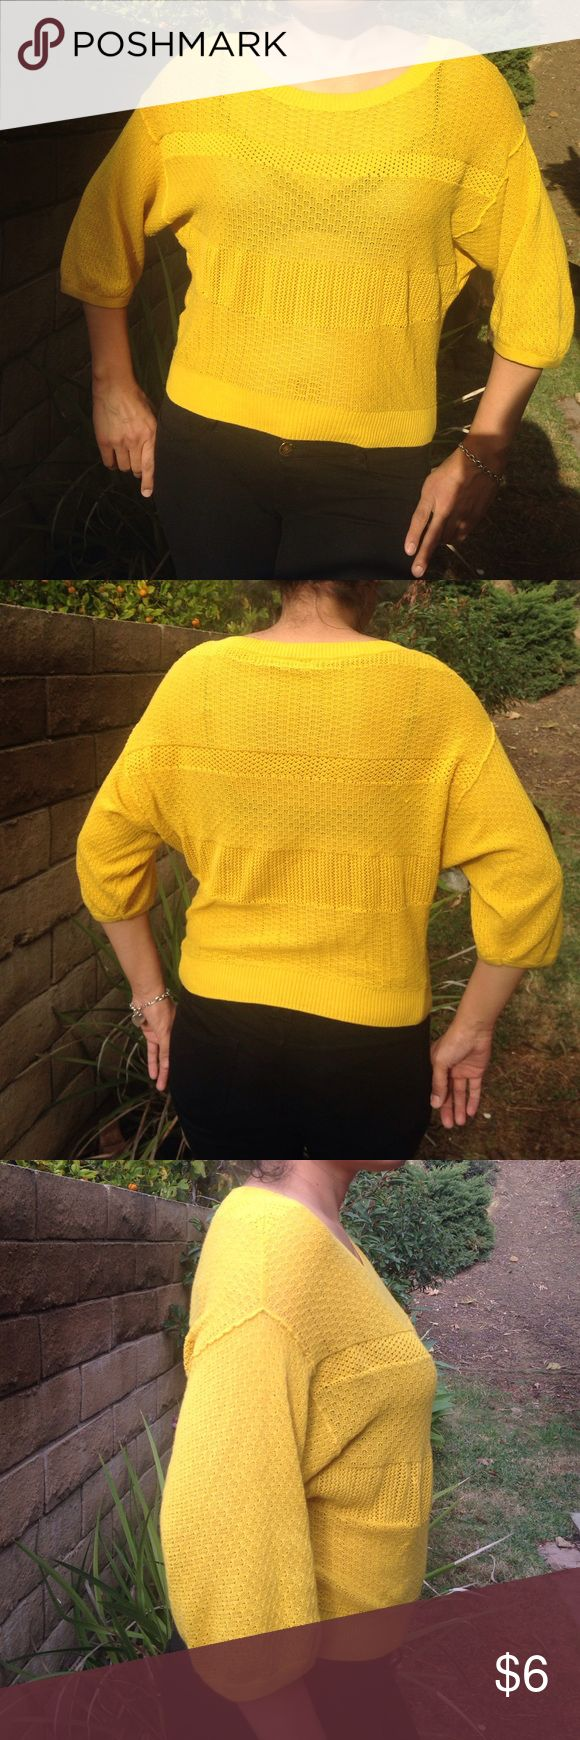 Rubbish Nordstrom Brand Sweater Light Waffle knit•mustard color•Size Small•100%cotton•this light weight sweater looks great with jeans and shorts! Rubbish Sweaters